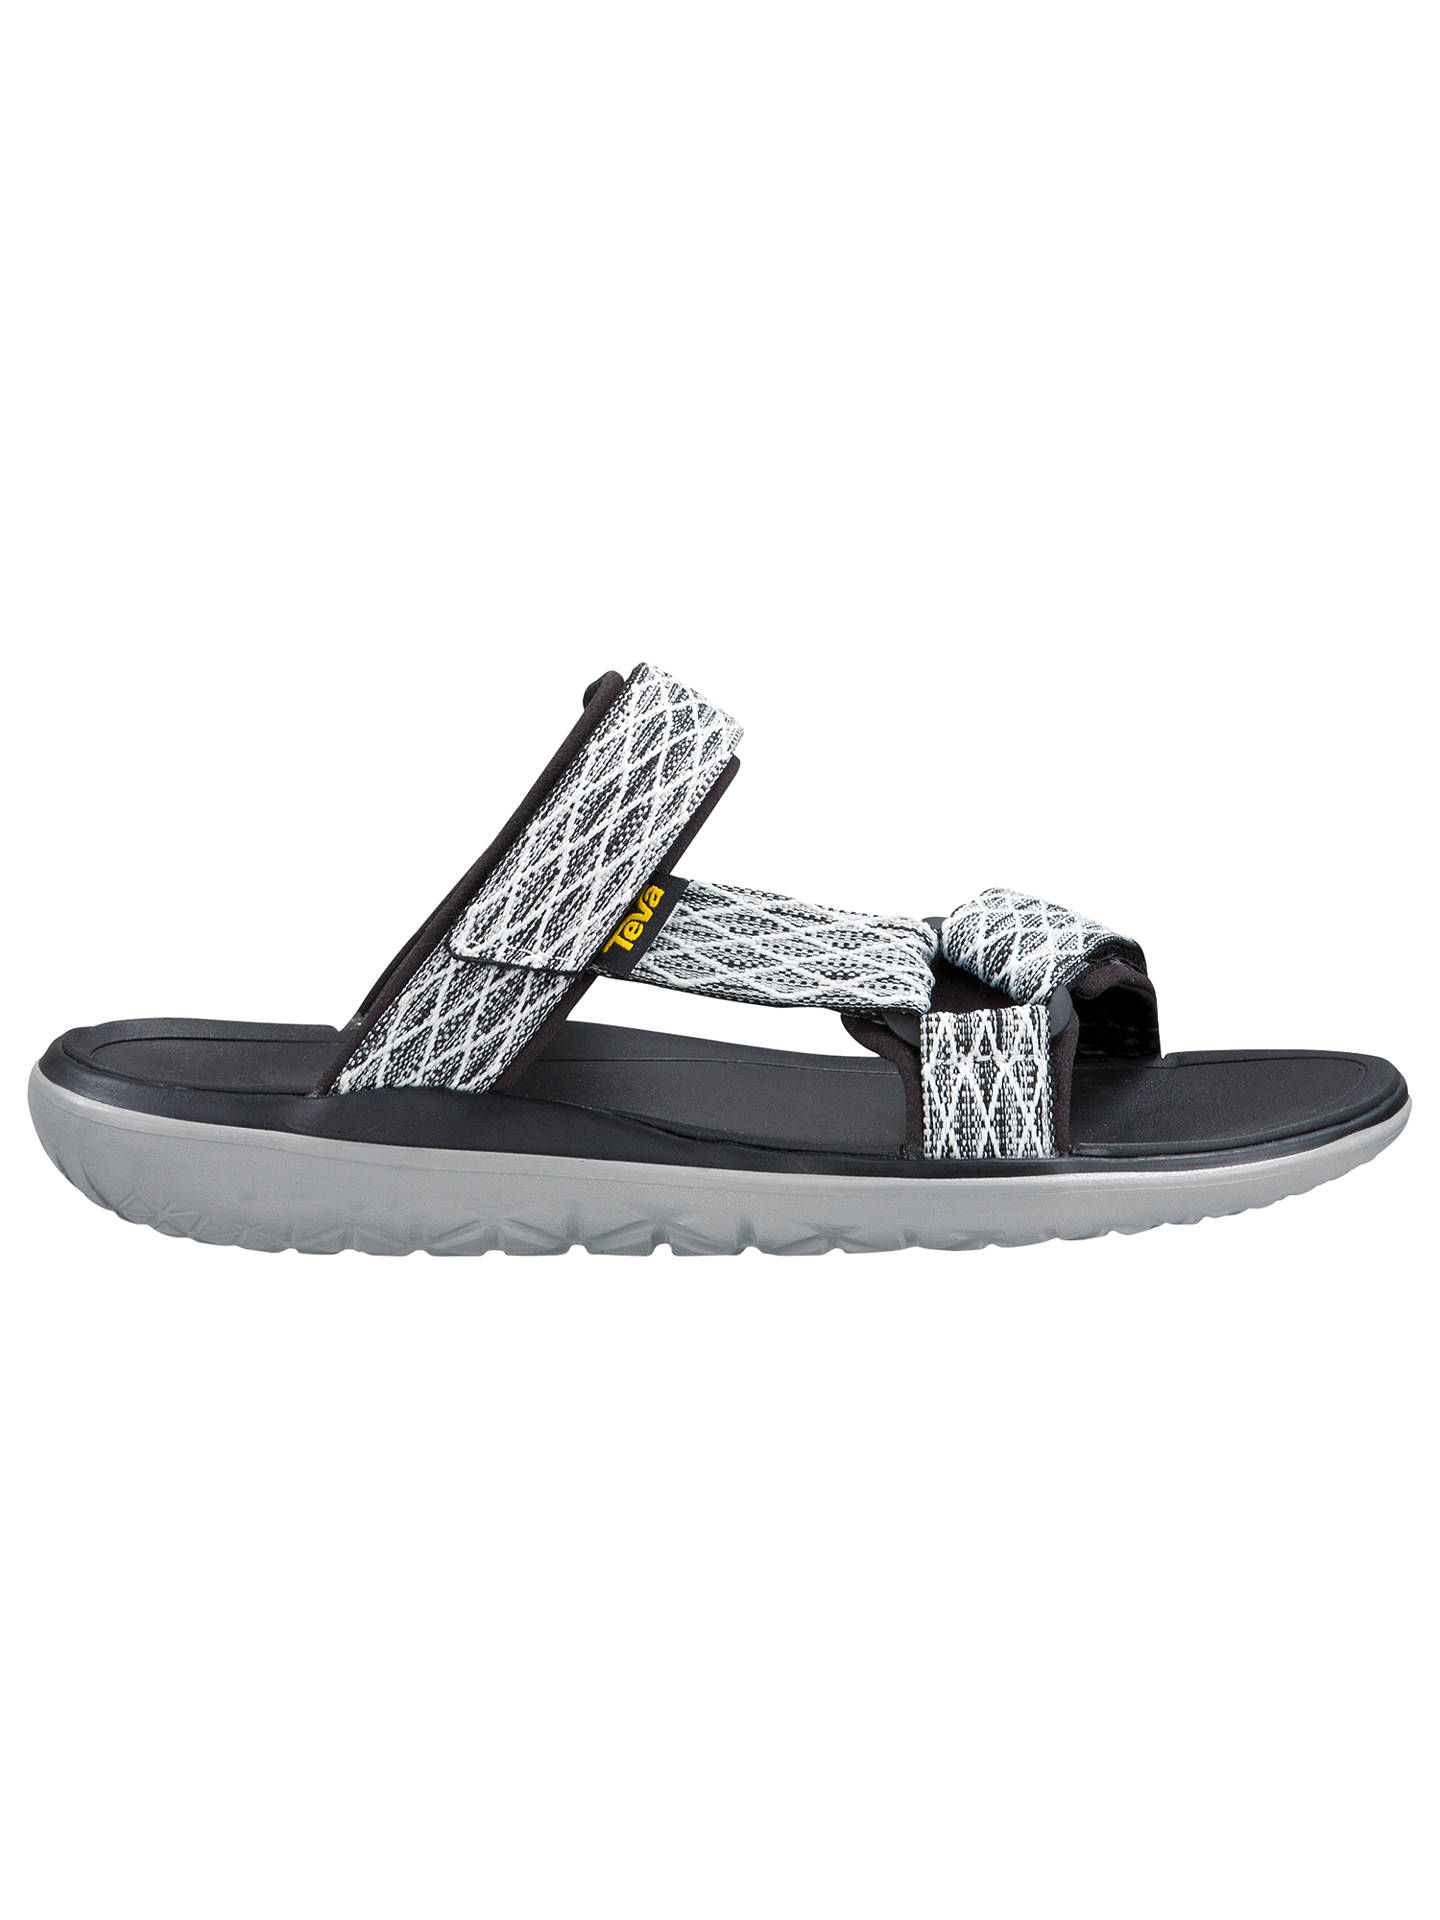 0ecb4e8d79787 Buy Teva Terra Float Slide Sandals